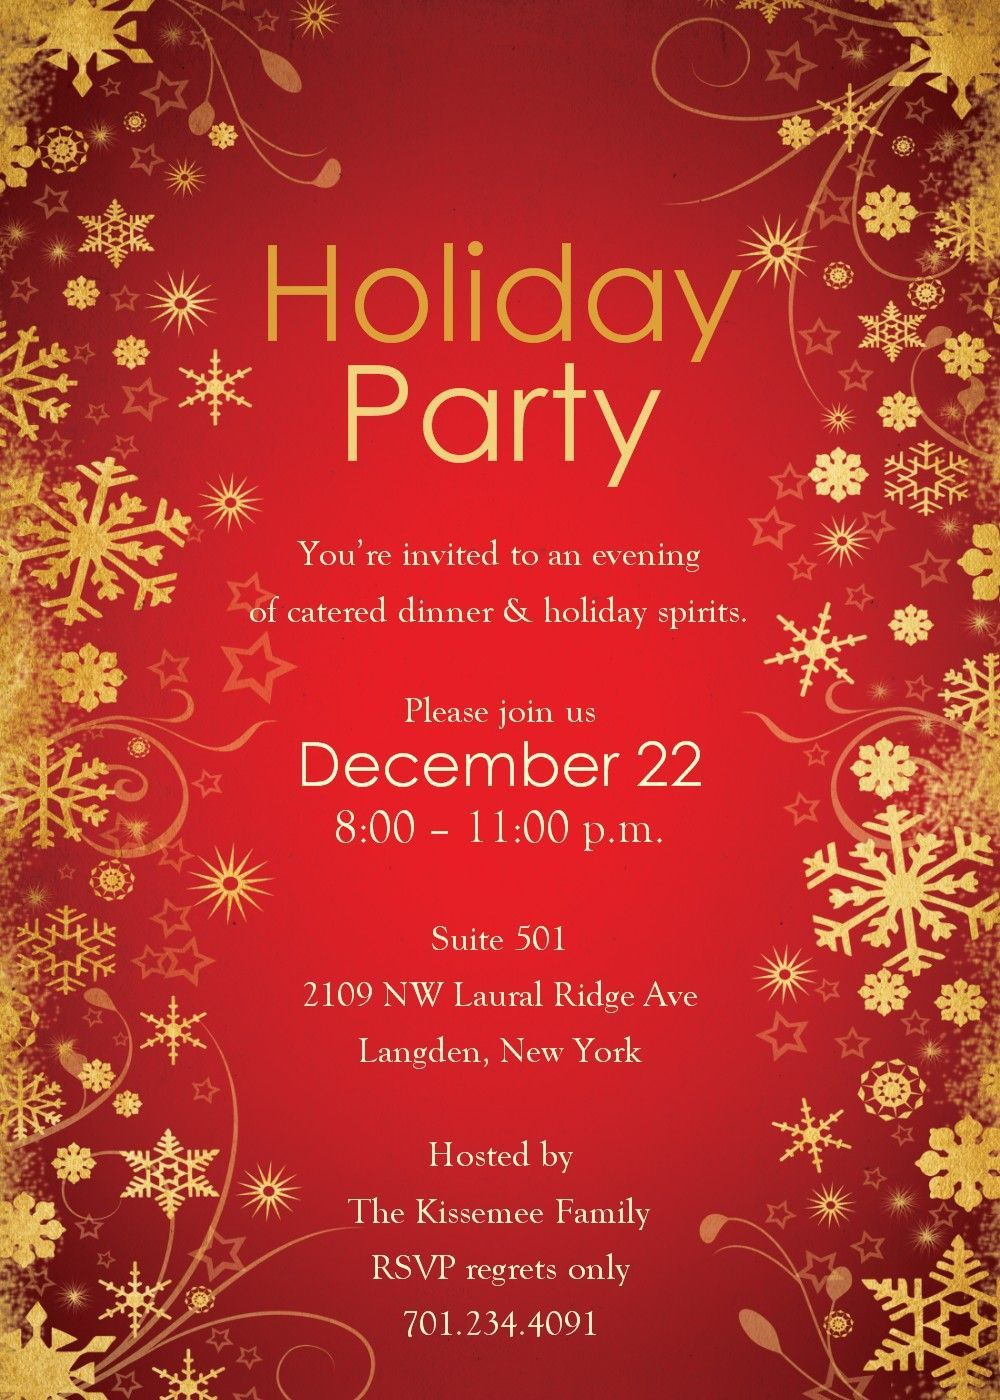 007 Stirring Christma Party Invite Template Word Highest Quality  Holiday Free Invitation Wording ExampleFull